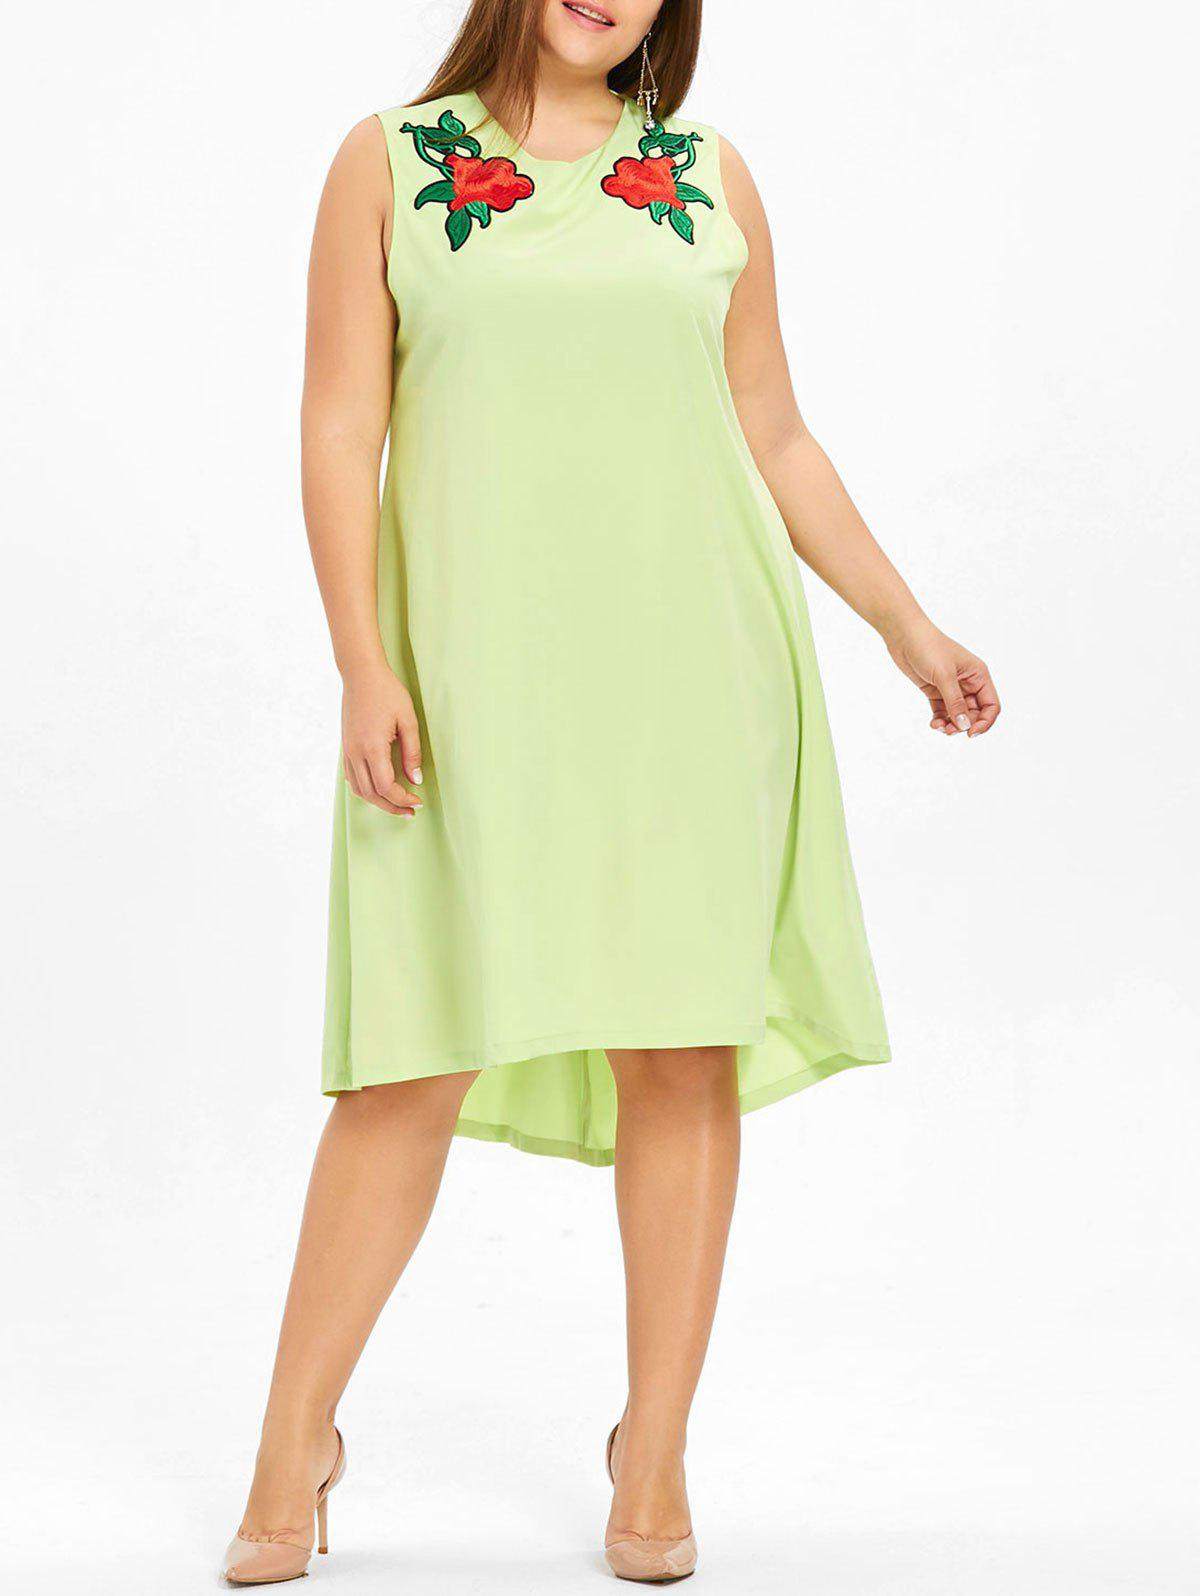 Buy Floral Embroidered High Low Plus Size Dress